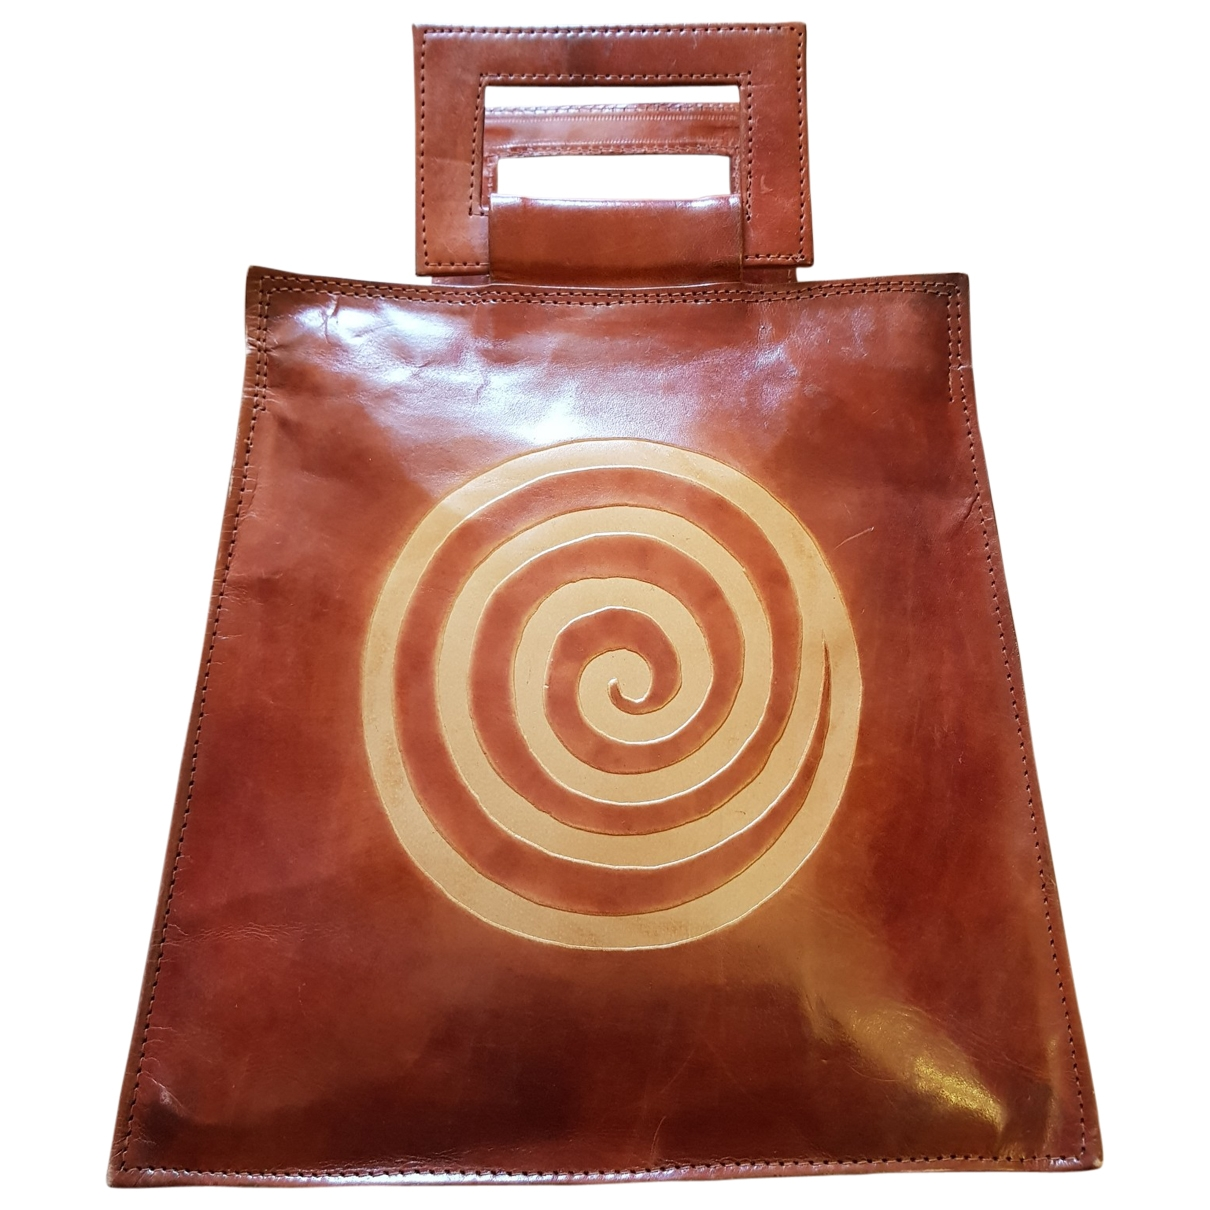 Non Signé / Unsigned \N Brown Patent leather handbag for Women \N